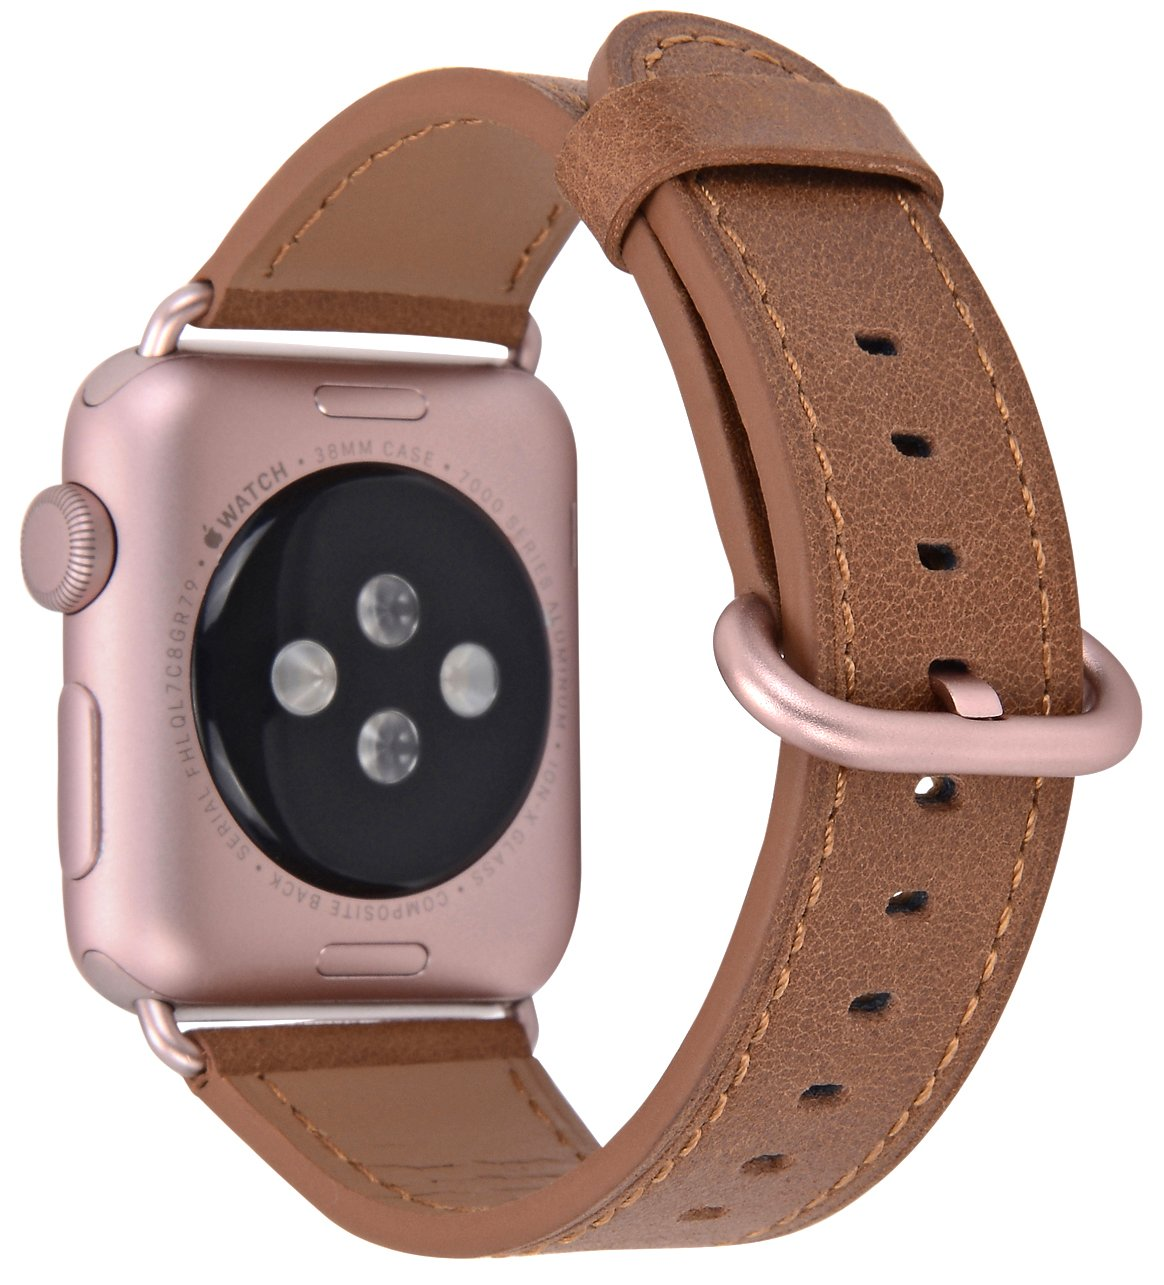 jsgjmy Apple Watchバンド38 mm 42 mmレディースメンズGenuineレザーループのiWatch Series 3 /シリーズ2 /シリーズ1 /Edition/スポーツ 38 mm|Rose Gold Buckle+Caramel Vintage Leather Rose Gold Buckle+Caramel Vintage Leather 38 mm B0799CKZZN